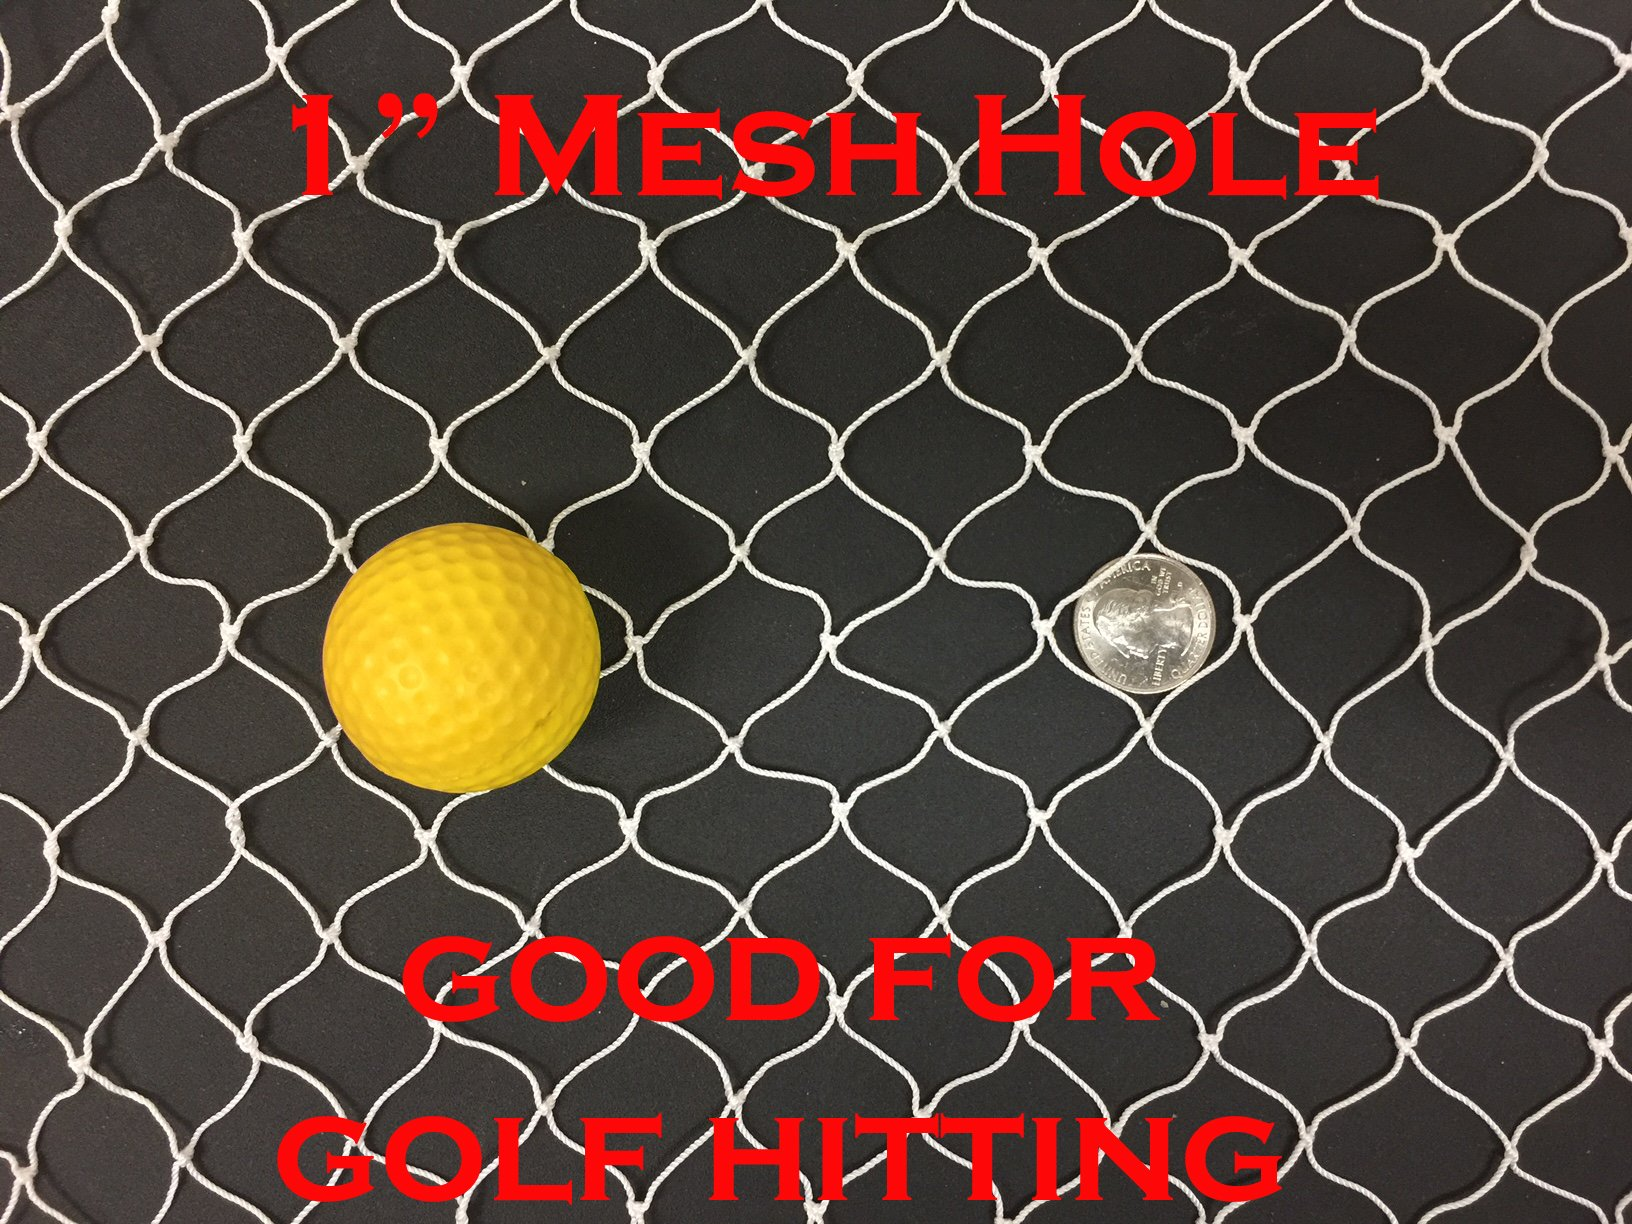 30FT X 25FT Netting, Sport Netting for Golf Backstop, Hockey, La Crosse, Barrier, Sports, Fish by Mnet (Image #1)